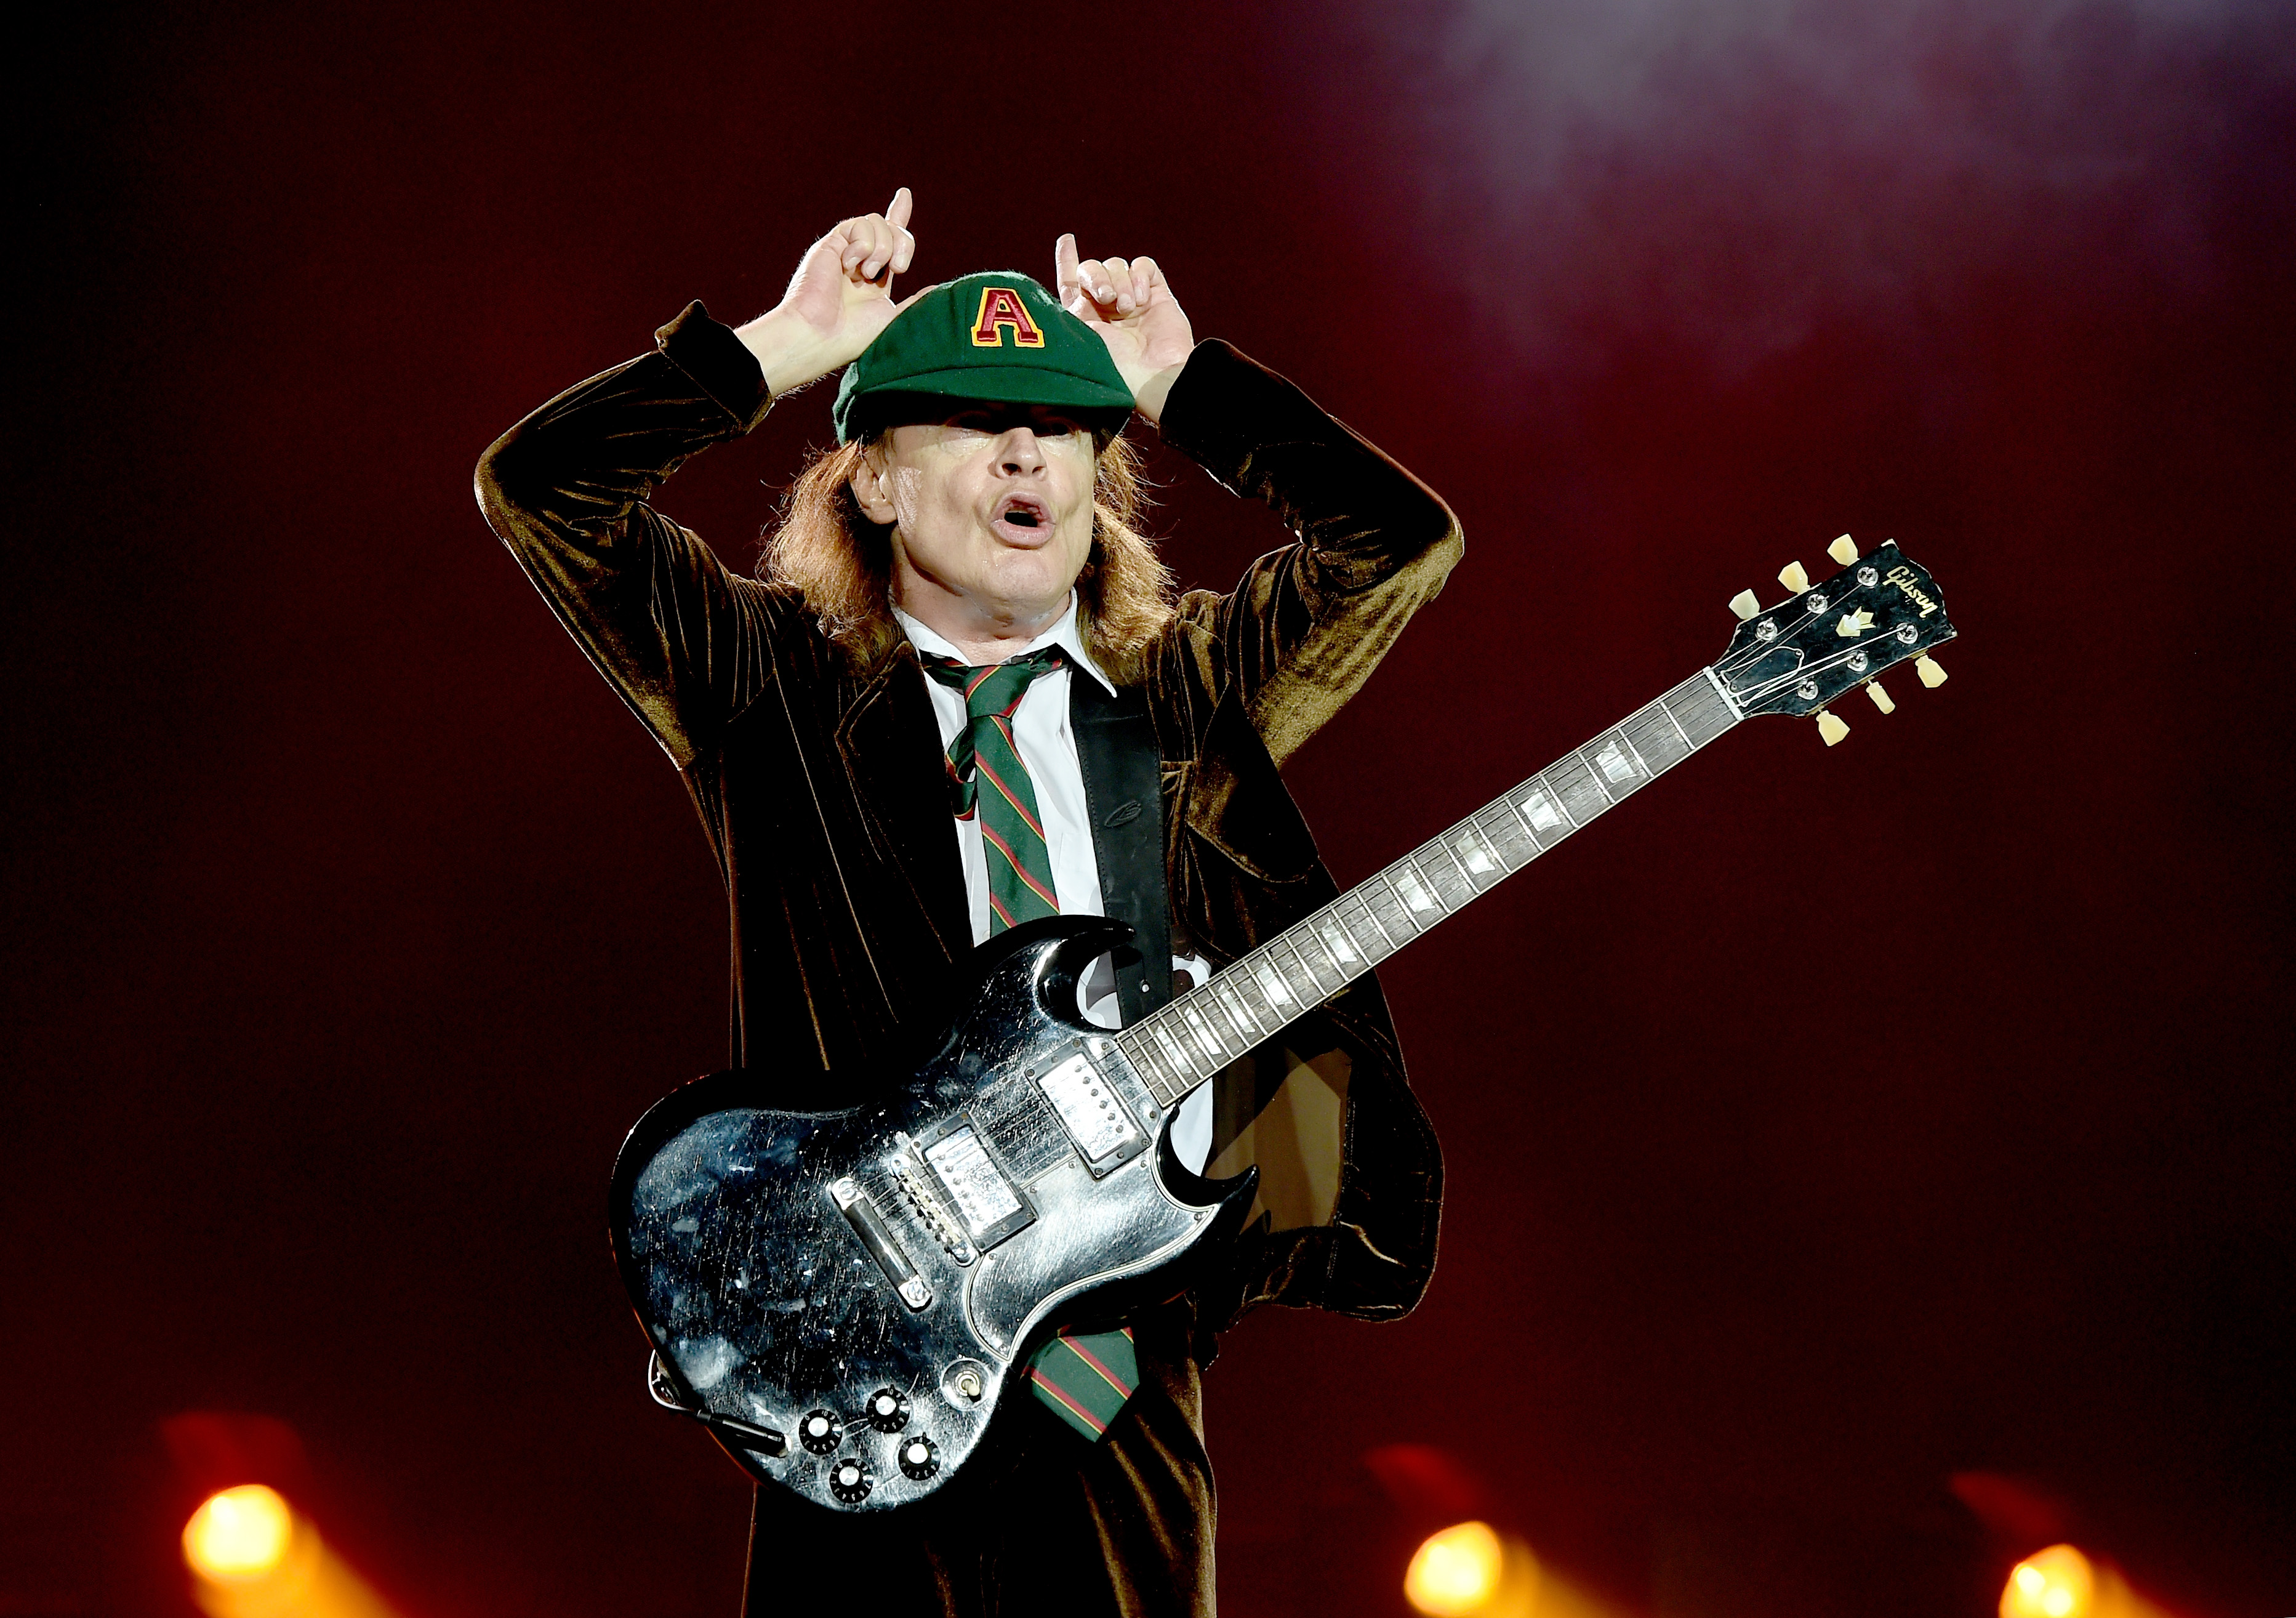 of AC/DC performs at Dodger Stadium on September 28, 2015 in Los Angeles, California.